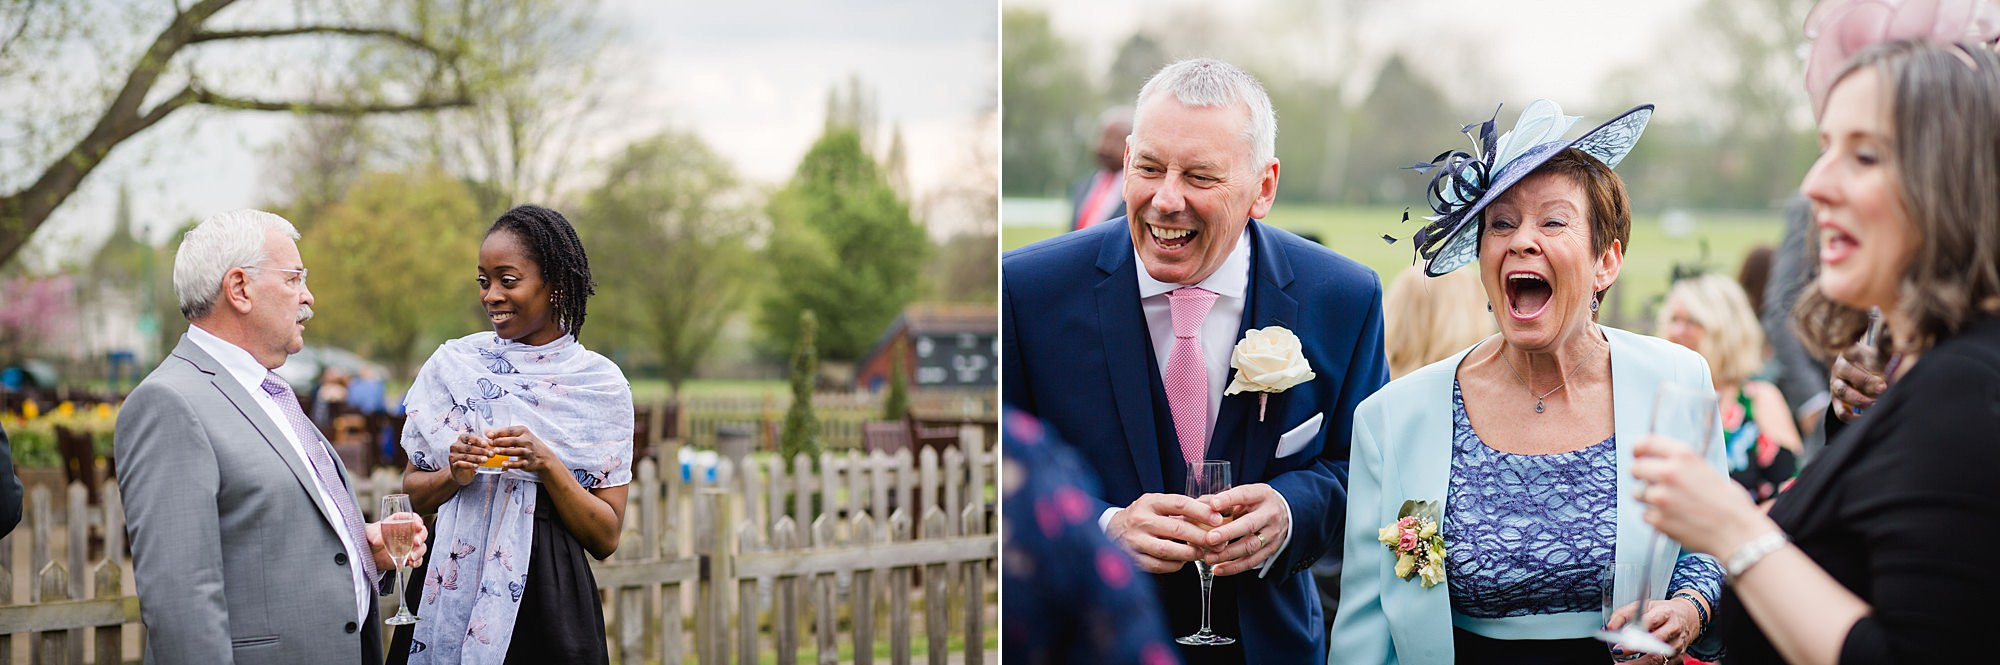 Bank of England Sports Centre wedding guests laughing together